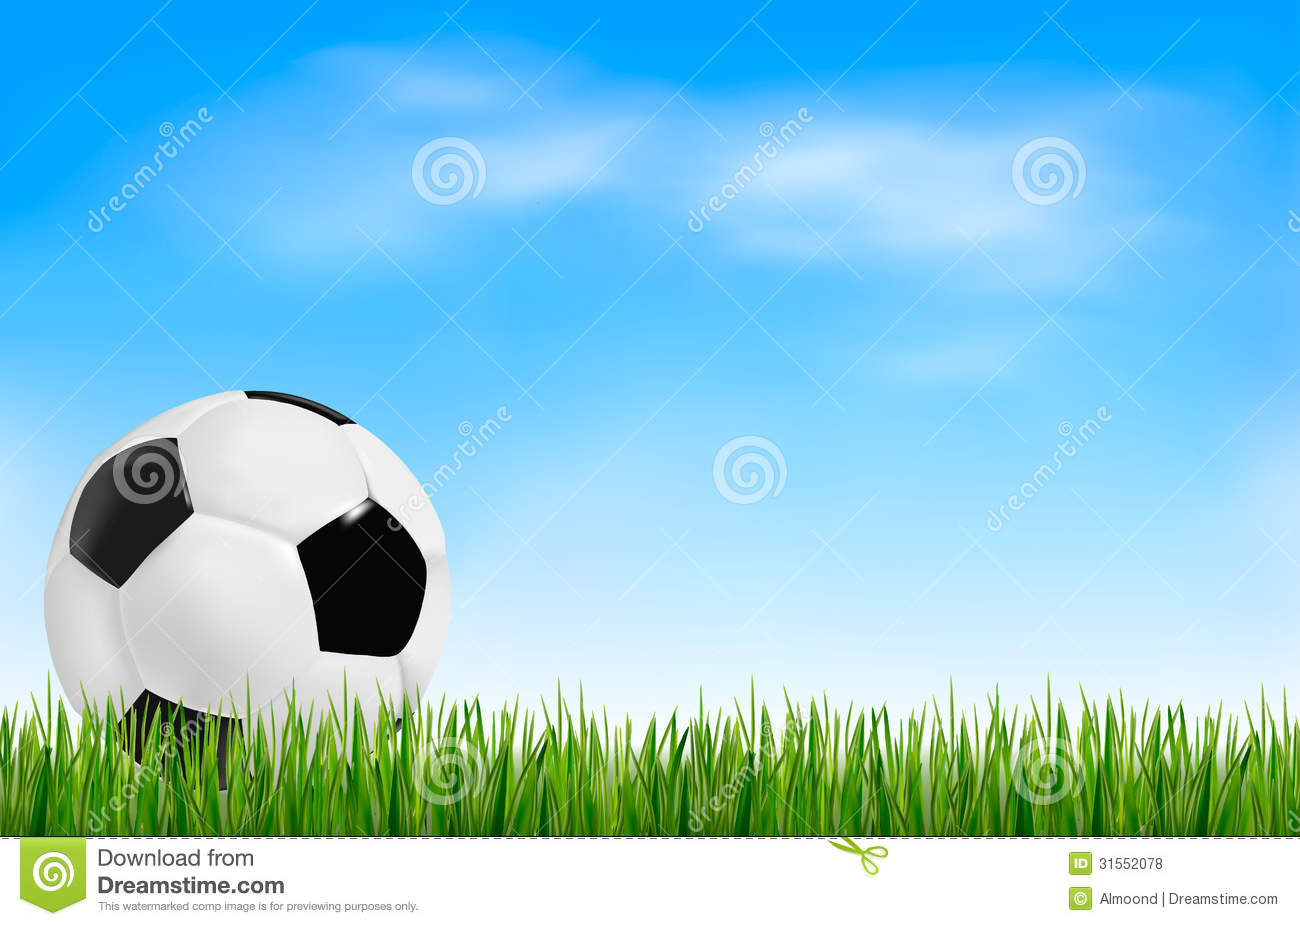 Cubes 3d Wallpaper Football Background Royalty Free Stock Photos Image